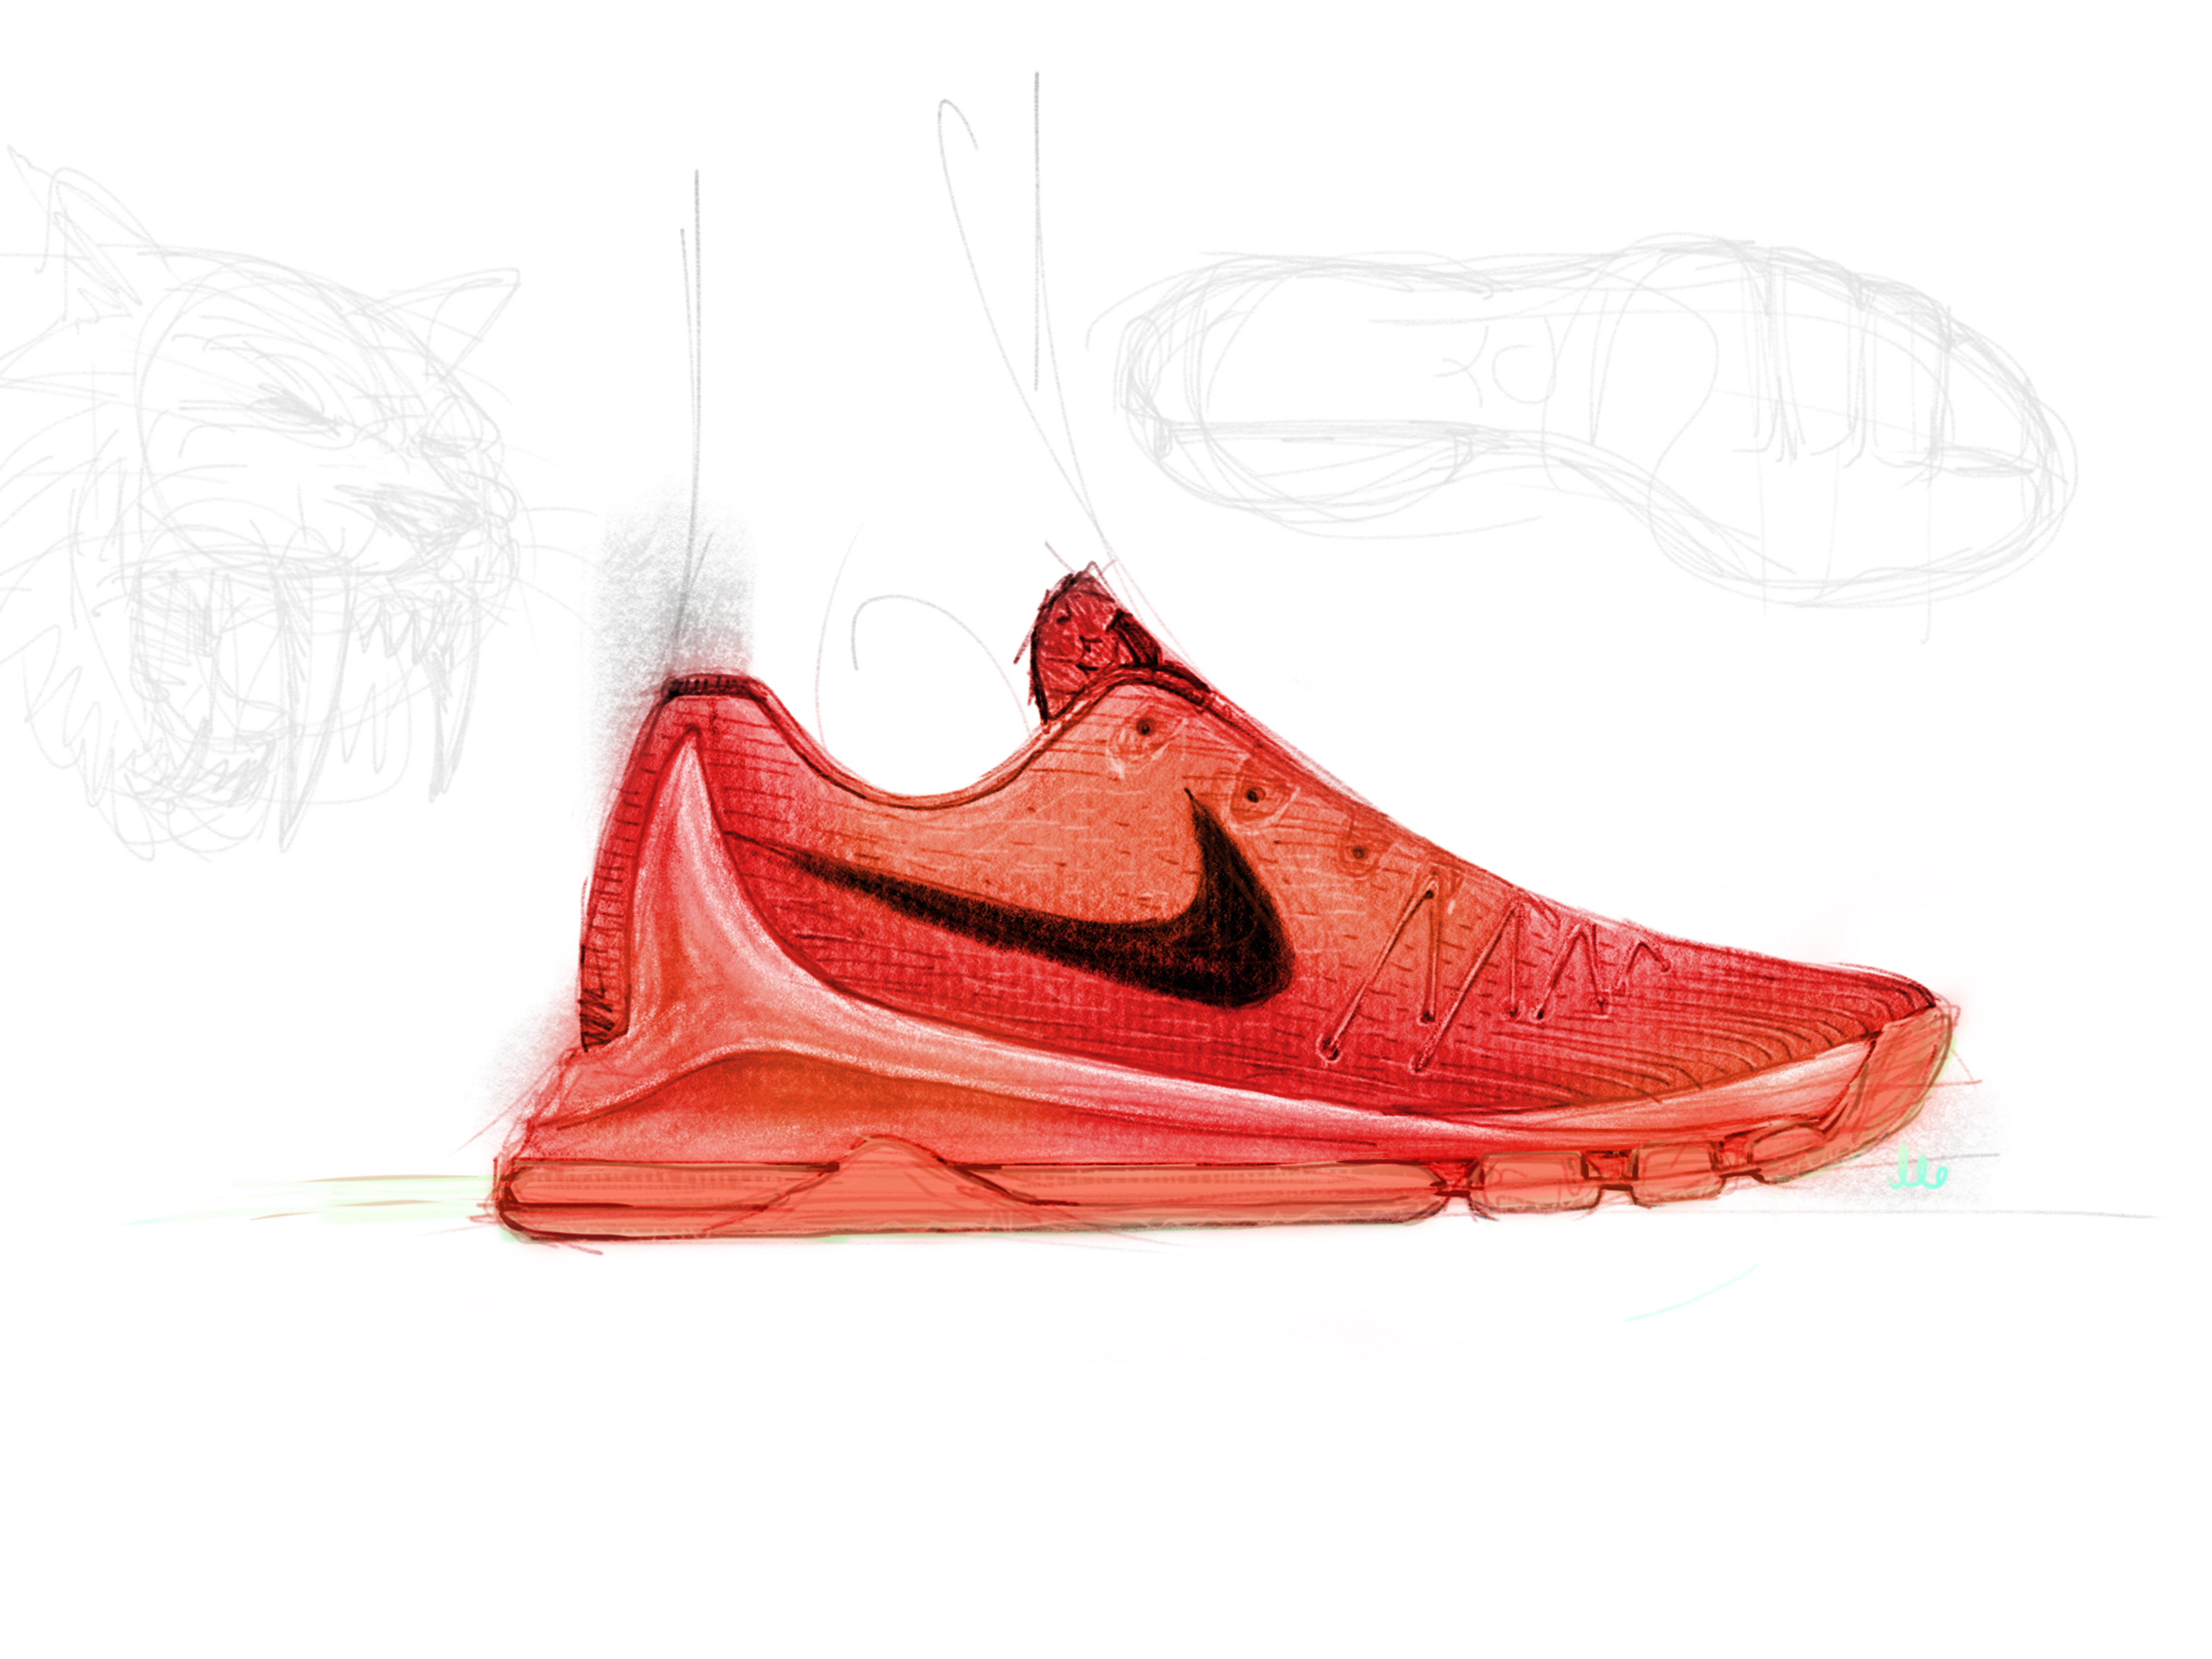 Drawn shoe kd shoe News Articulated KD8 LO Combines